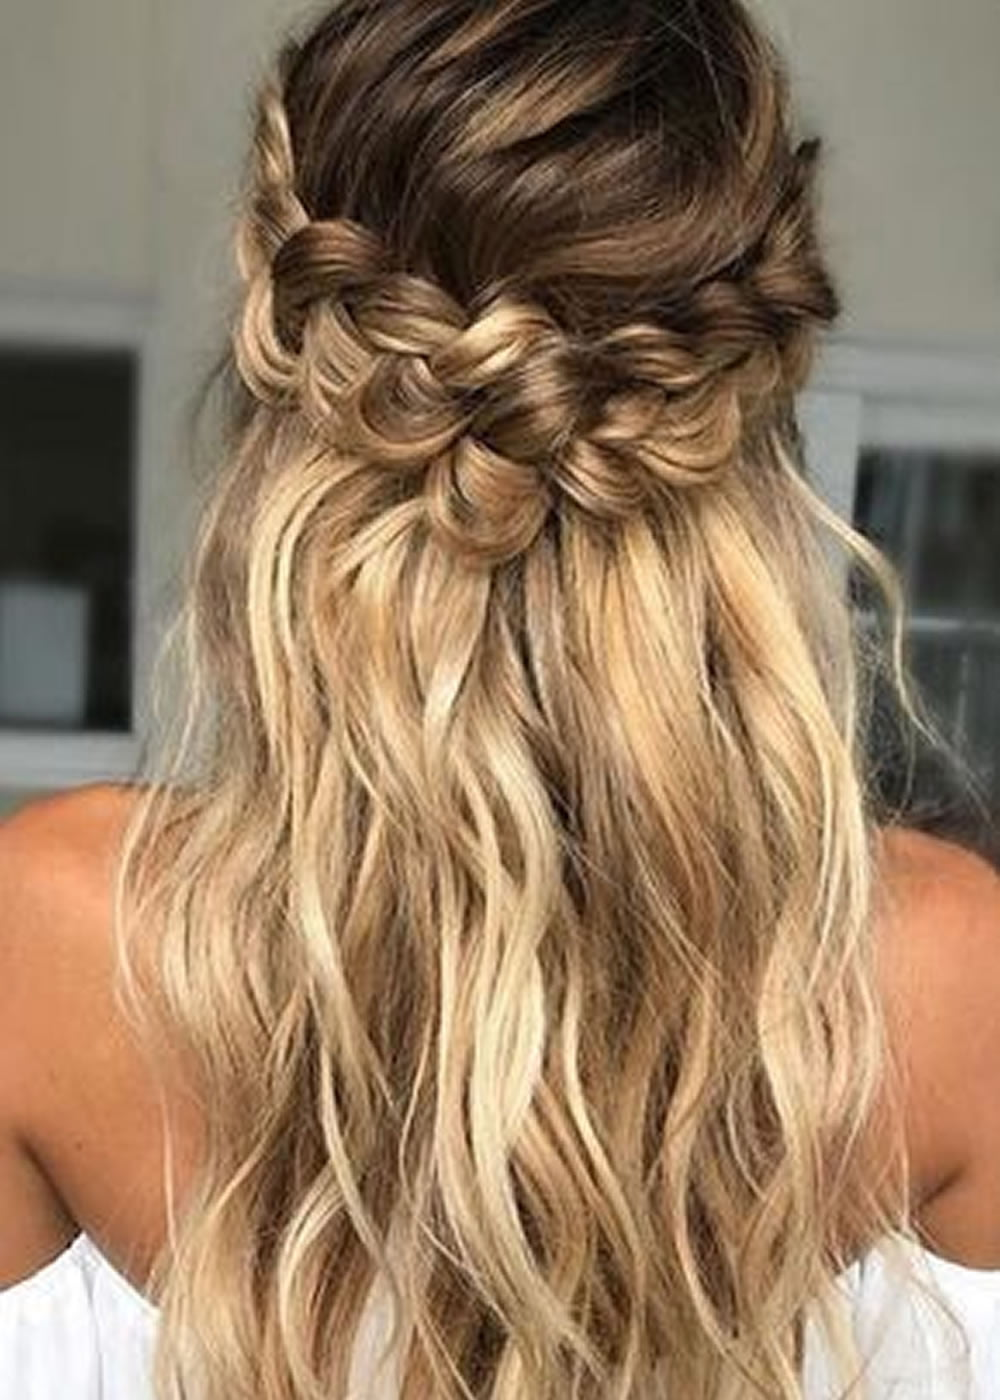 49 Braided Hair Ideas Great Style